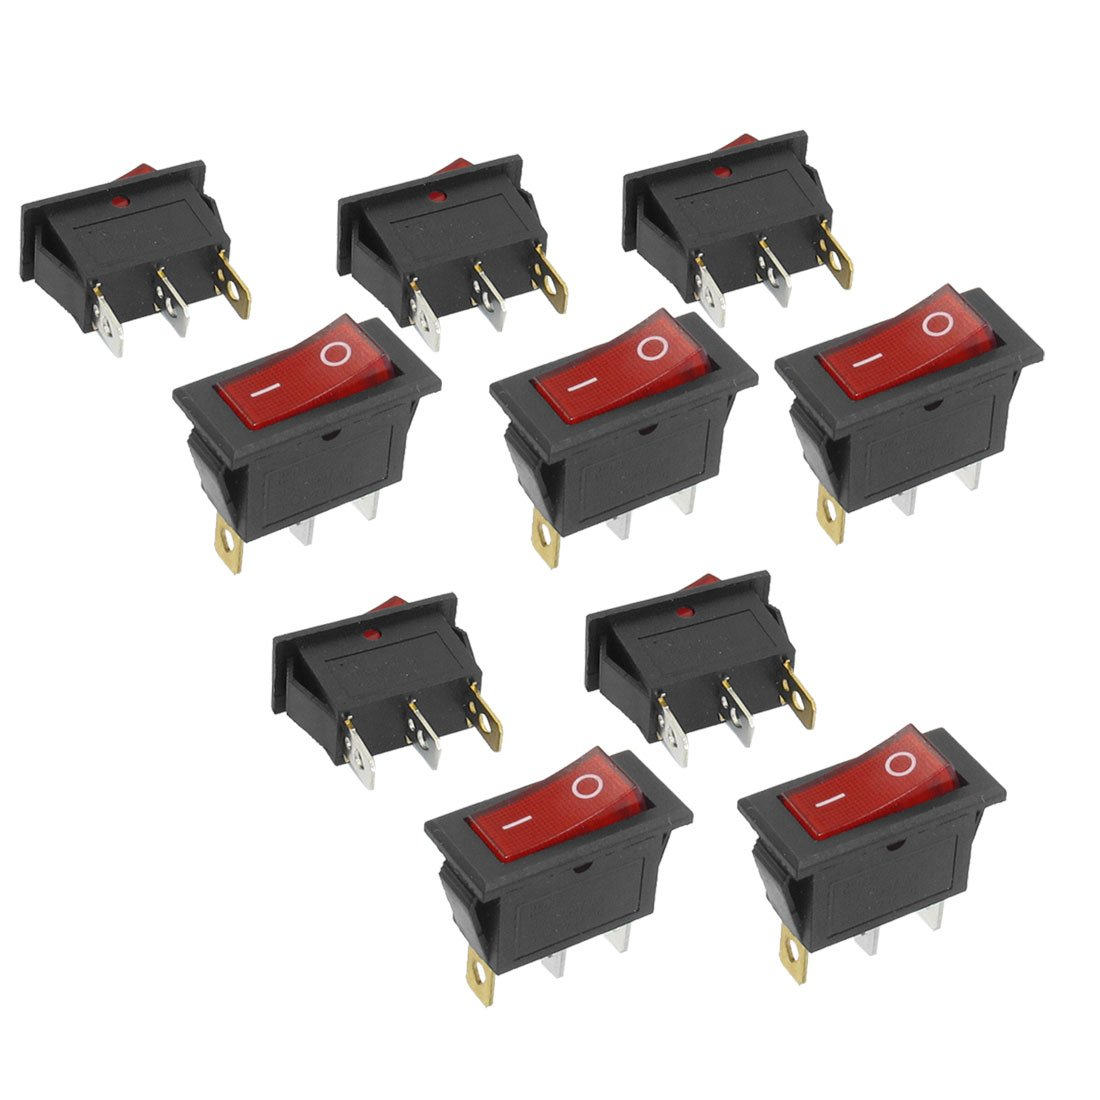 Promotion! 10Pcs 3 Pin SPST Neon Light On/Off Rocker Switch AC 250V/10A 125V/15A 20pcs lot mini boat rocker switch spst snap in ac 250v 3a 125v 6a 2 pin on off 10 15mm free shipping